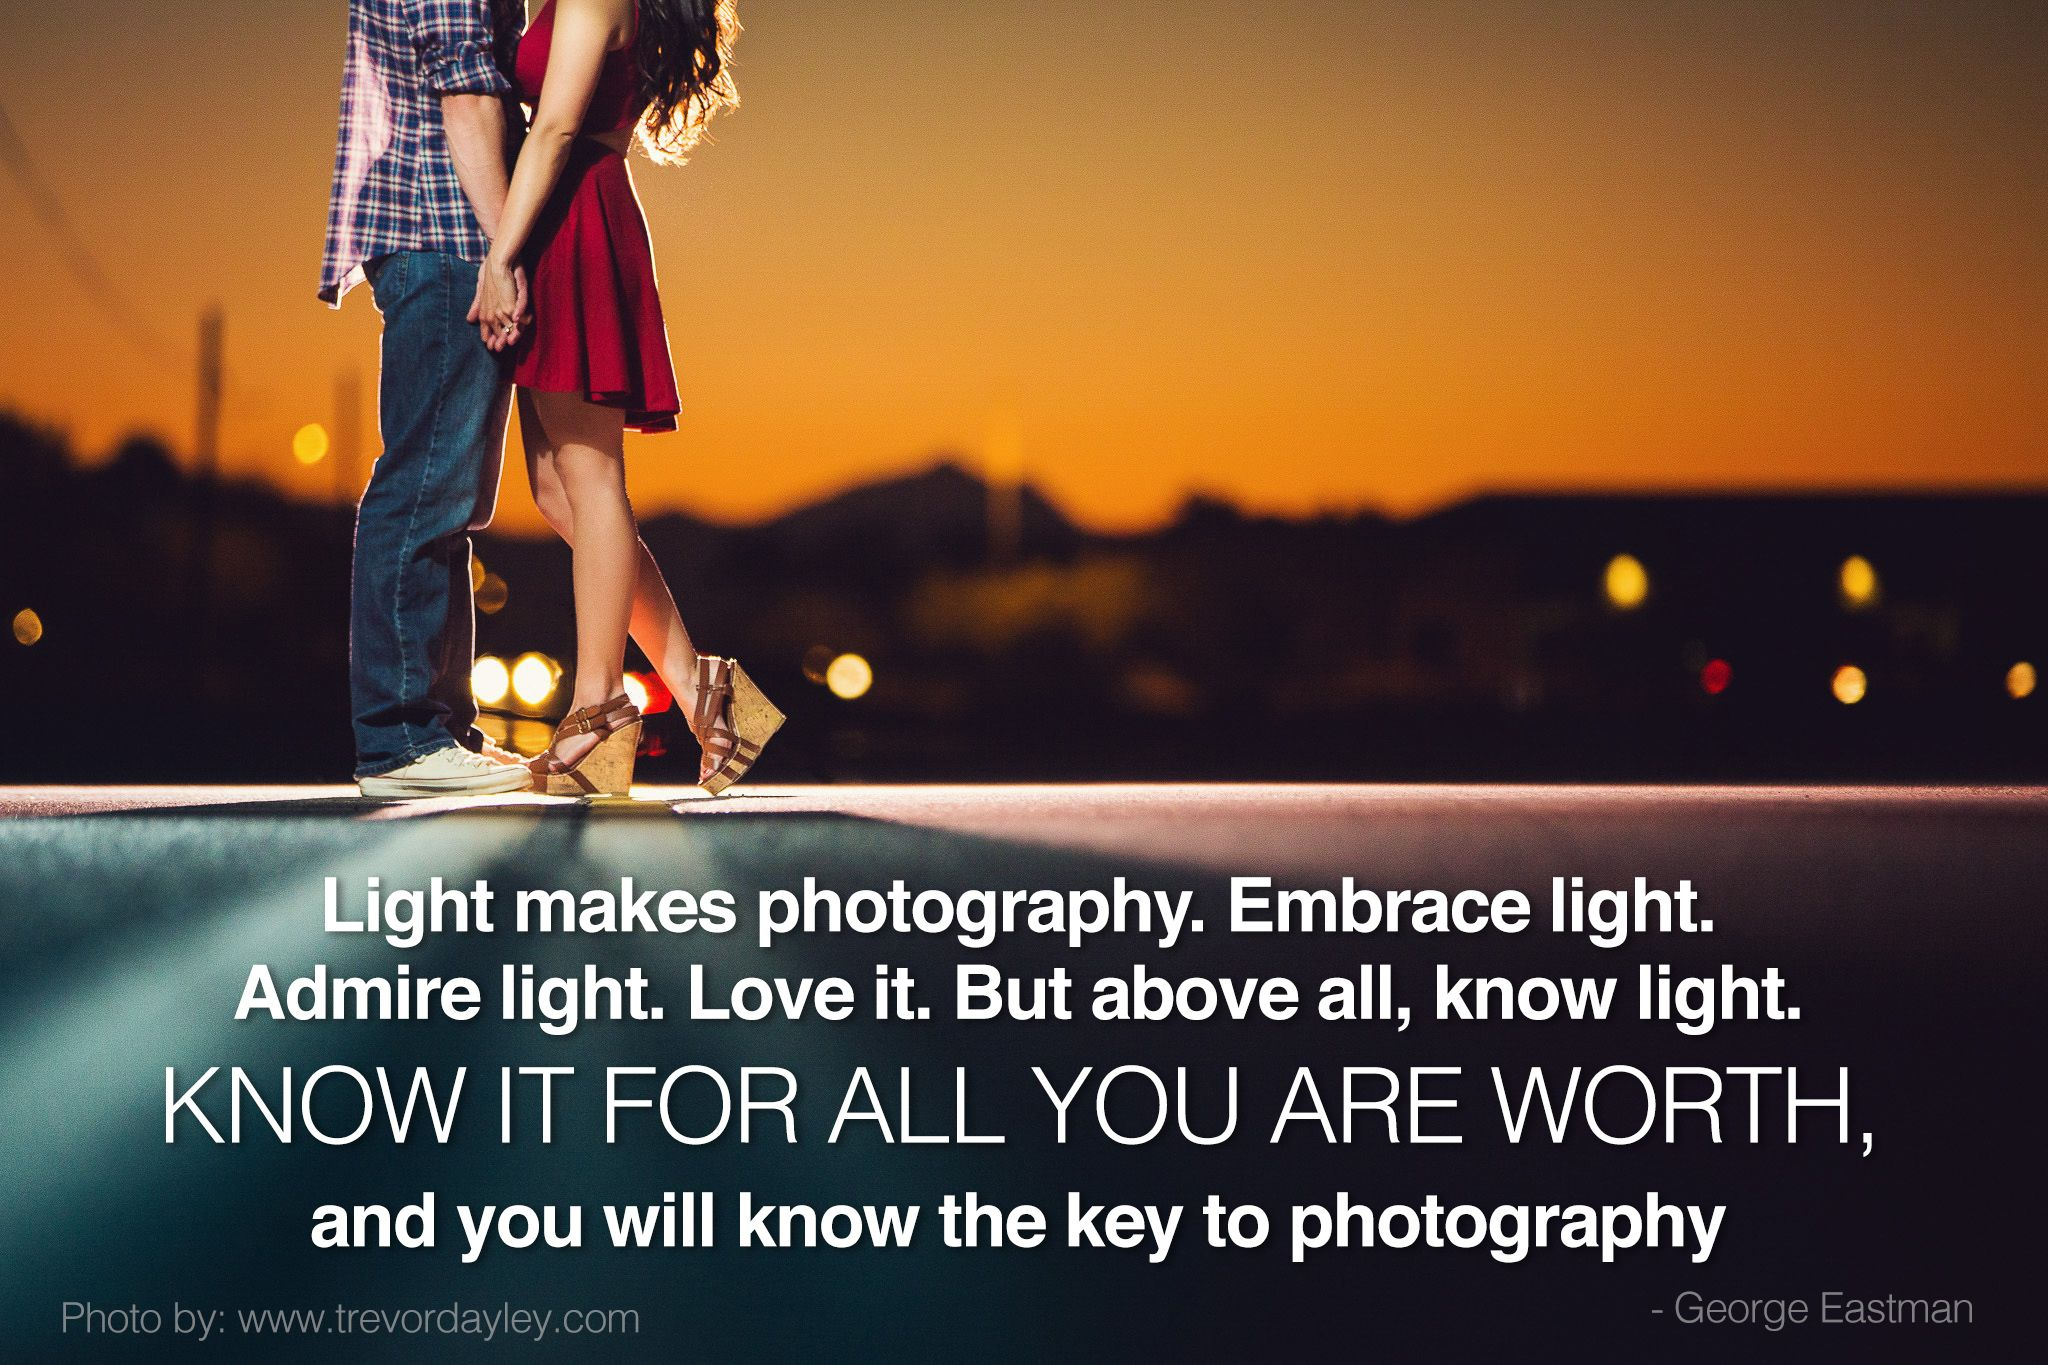 Light makes photography. Embrace light. Admire light. Love it. But above all, know light. Know it for all you are worth, and you will know the key to photography. - George Eastman